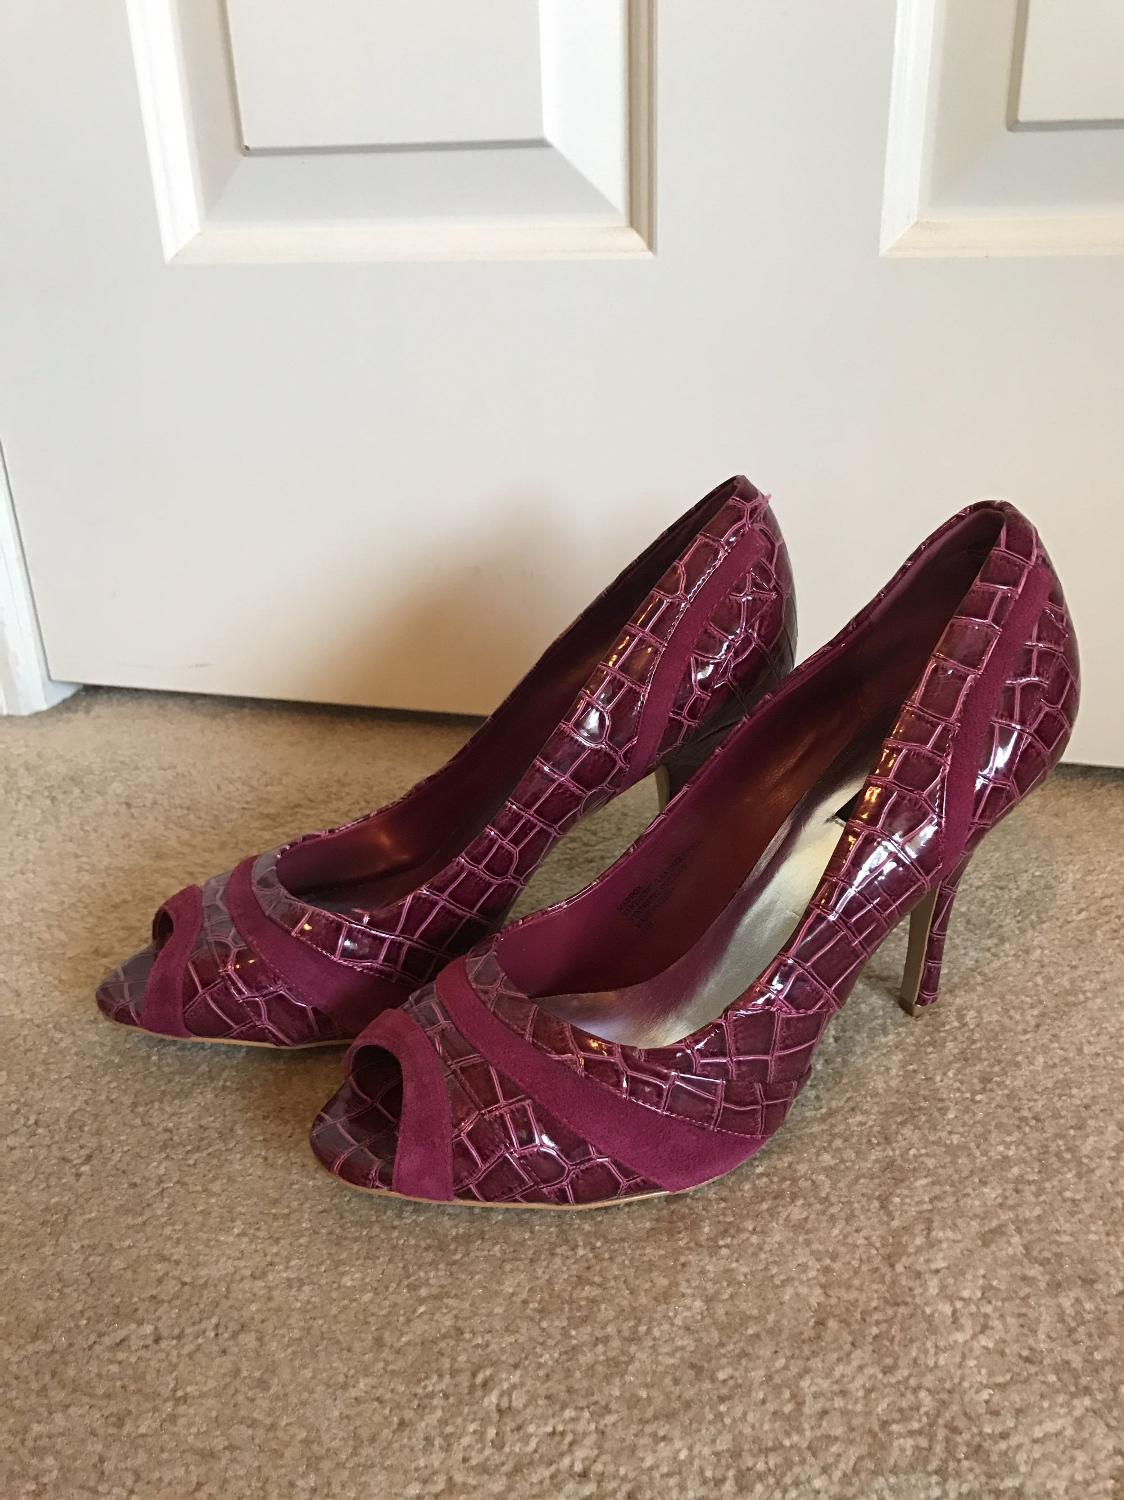 Best Size To Buy Shoes For Resale